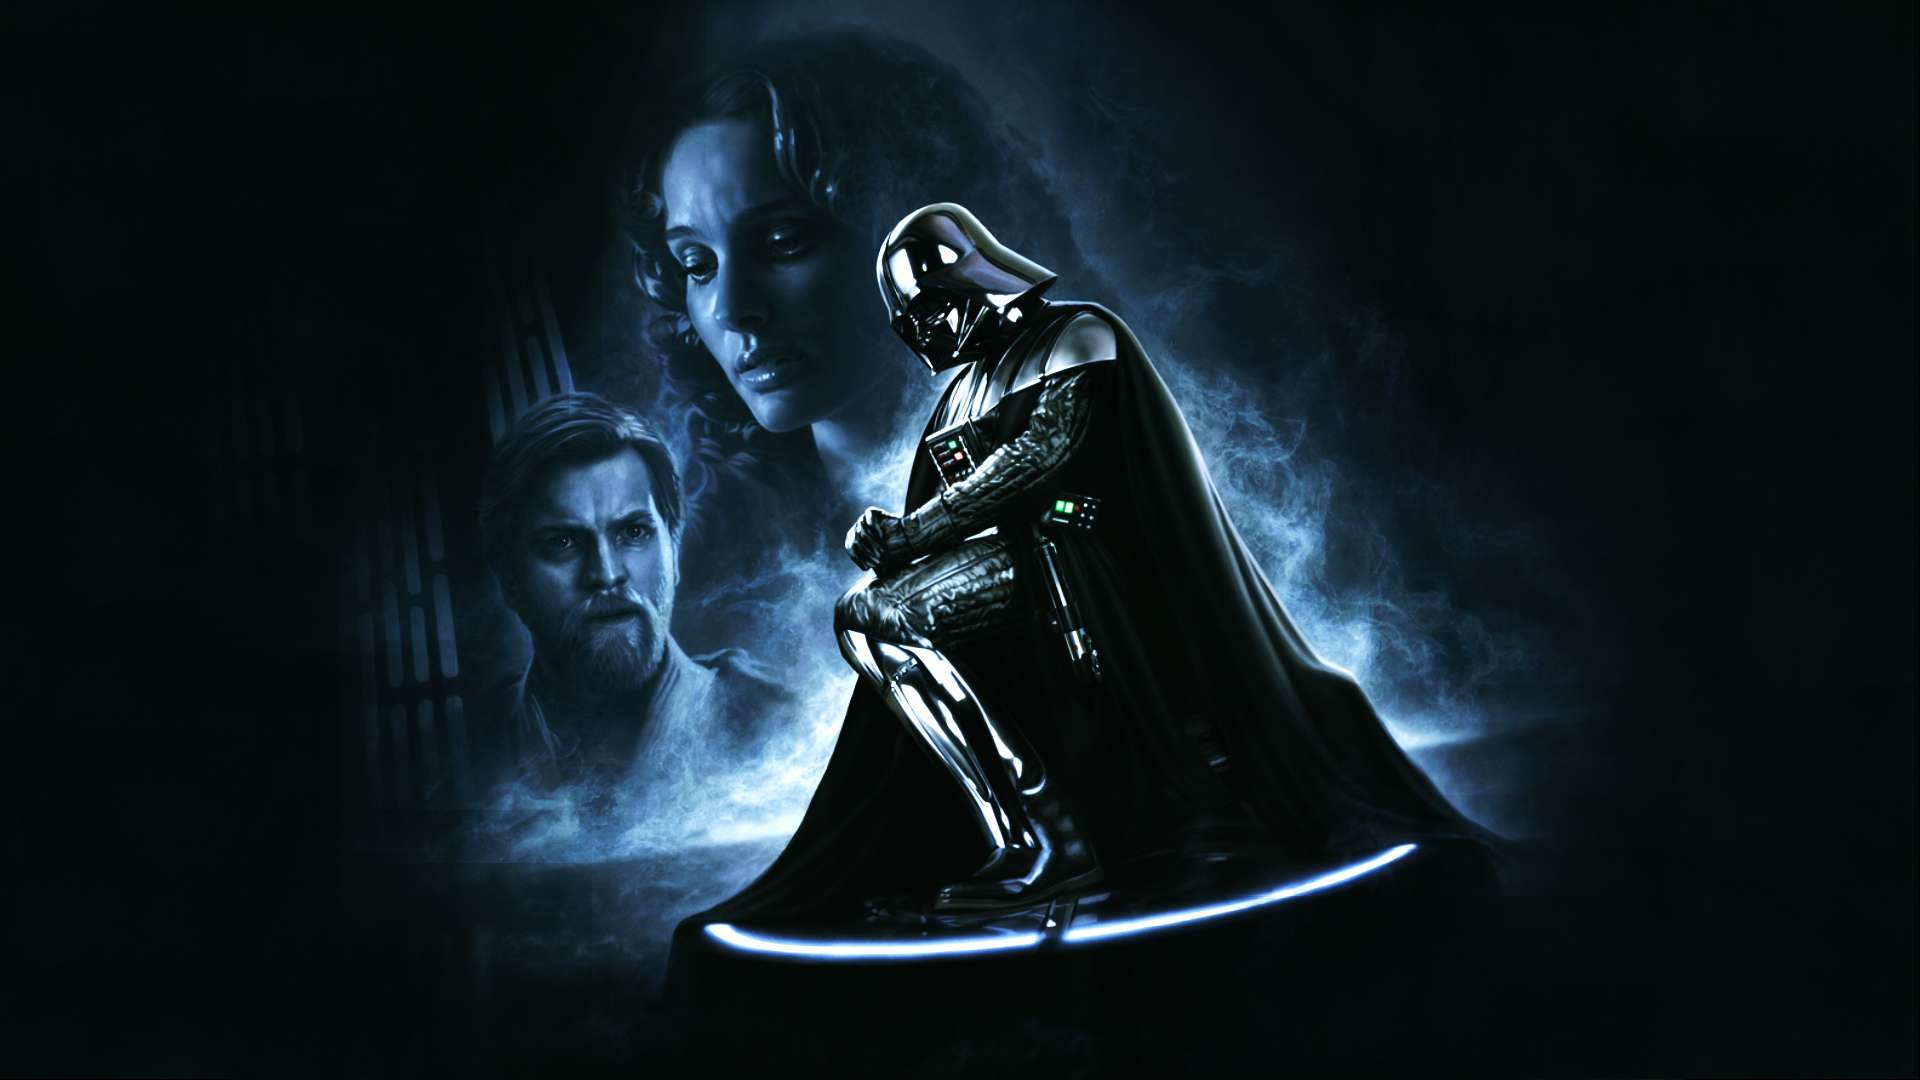 Star Wars Wallpaper 017